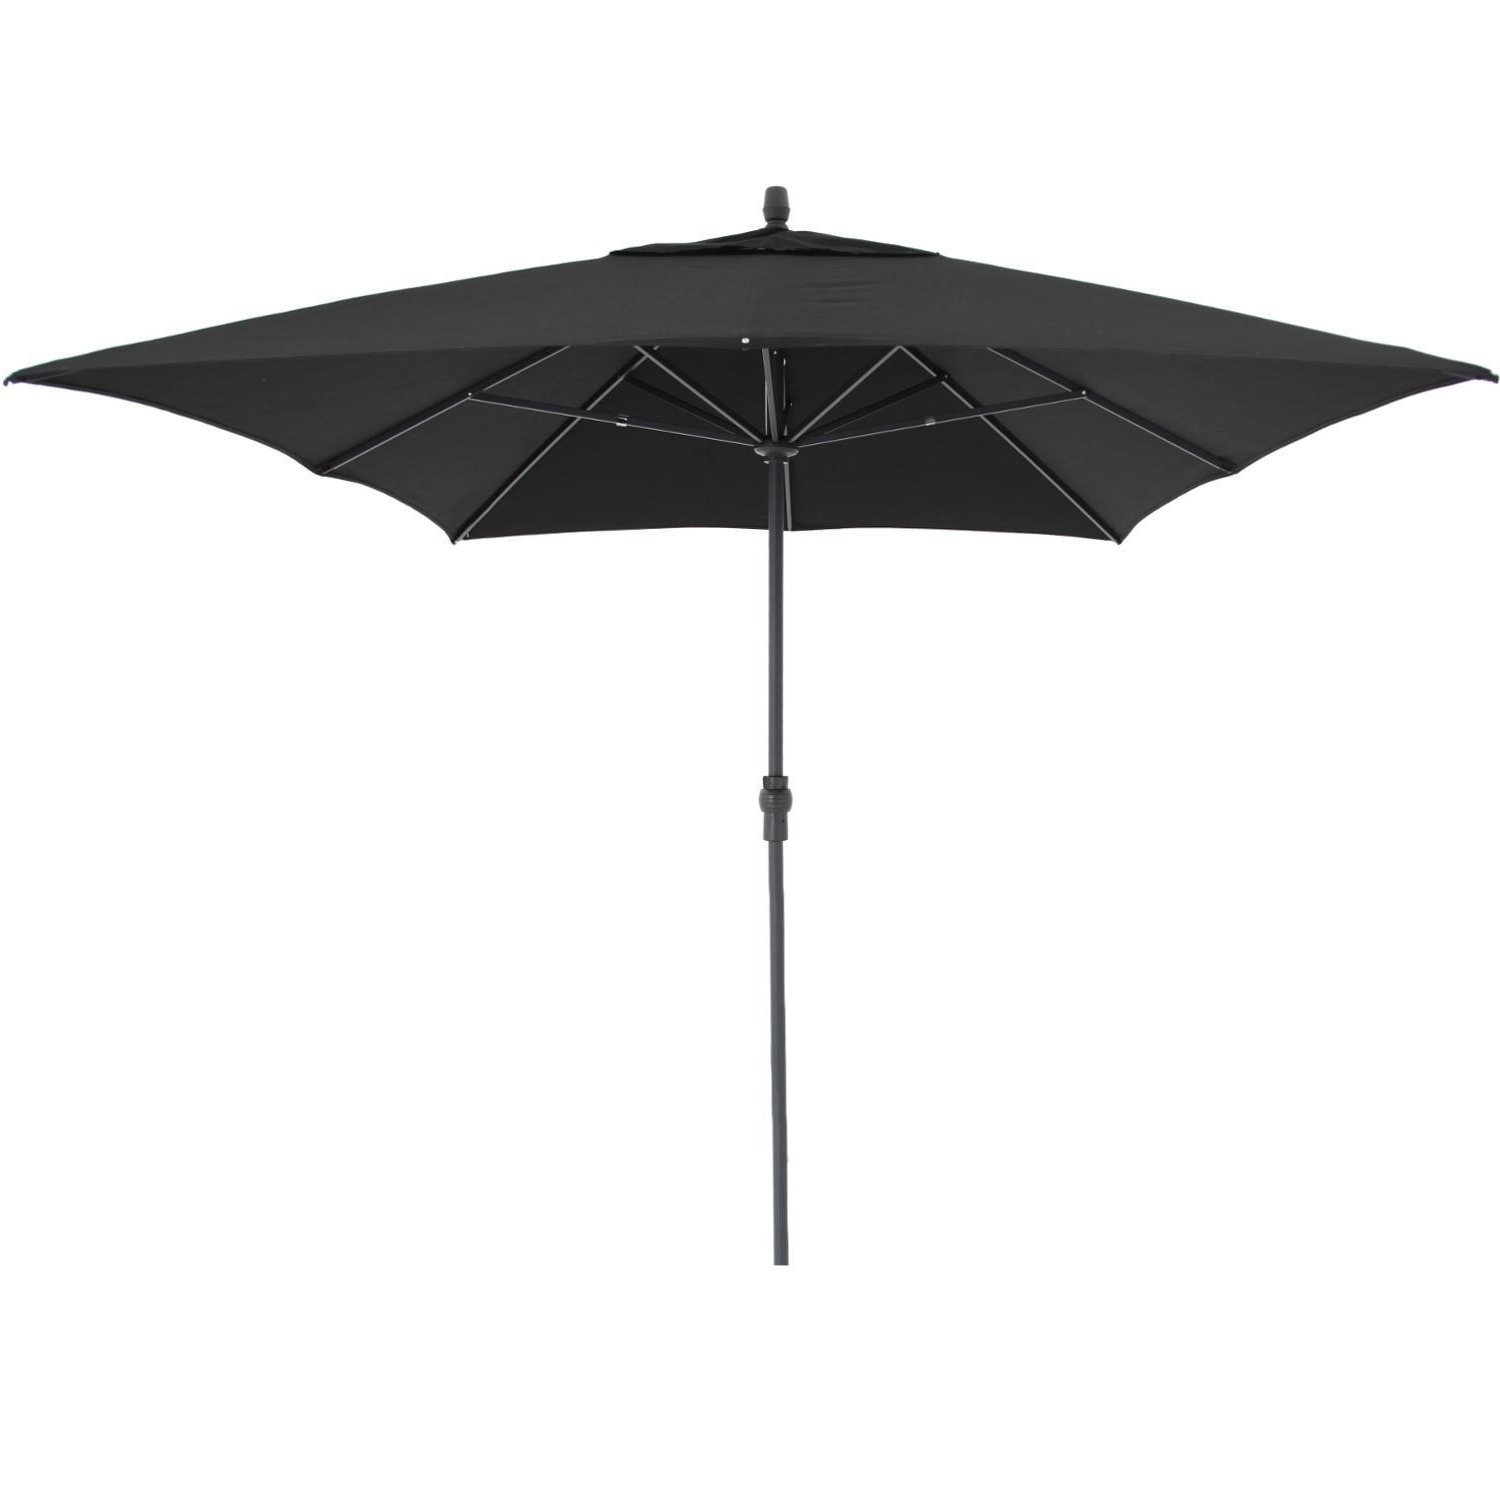 11 Ft. Sunbrella Patio Umbrellas With Regard To Most Current Treasure Garden 8 Ft. X 11 Ft (View 18 of 20)